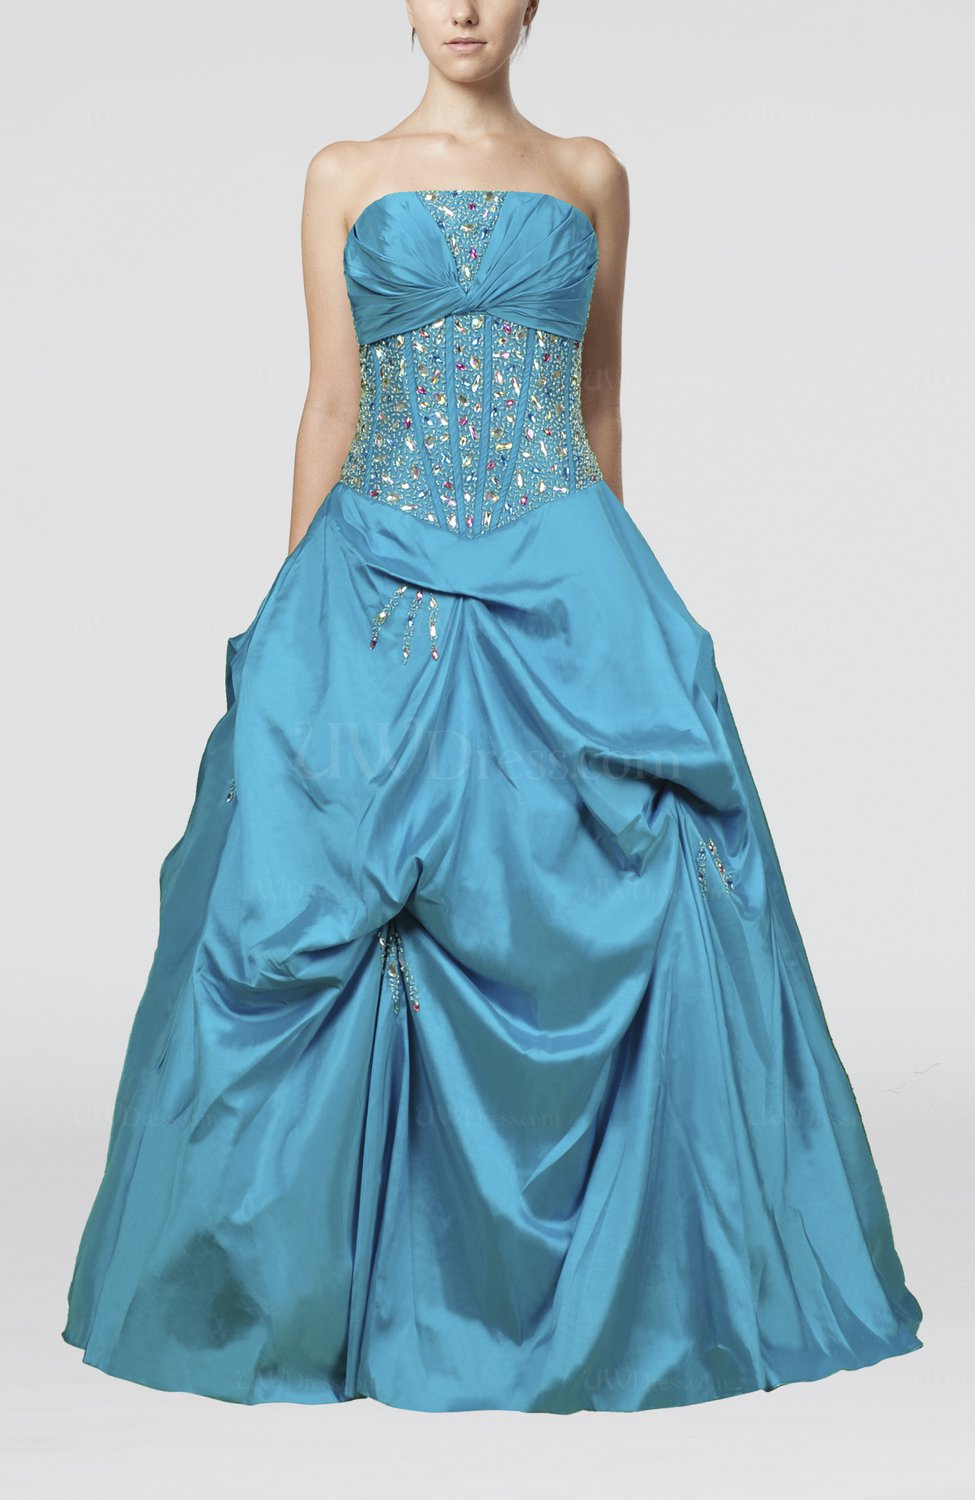 teal cinderella princess sleeveless